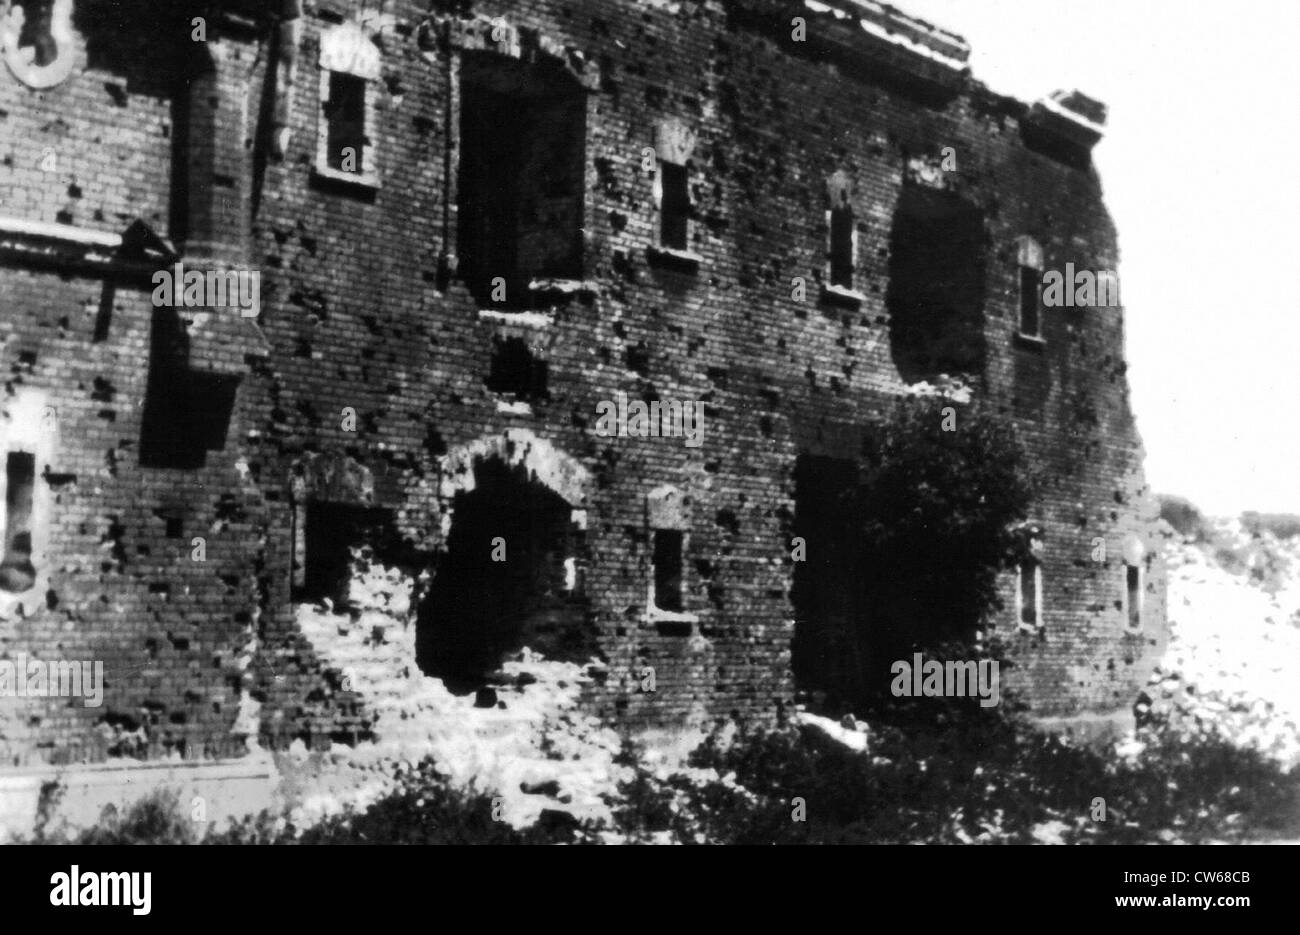 Ruins of the citadel of Brest-Litovsk (Byelorussia), in 1945 - Stock Image